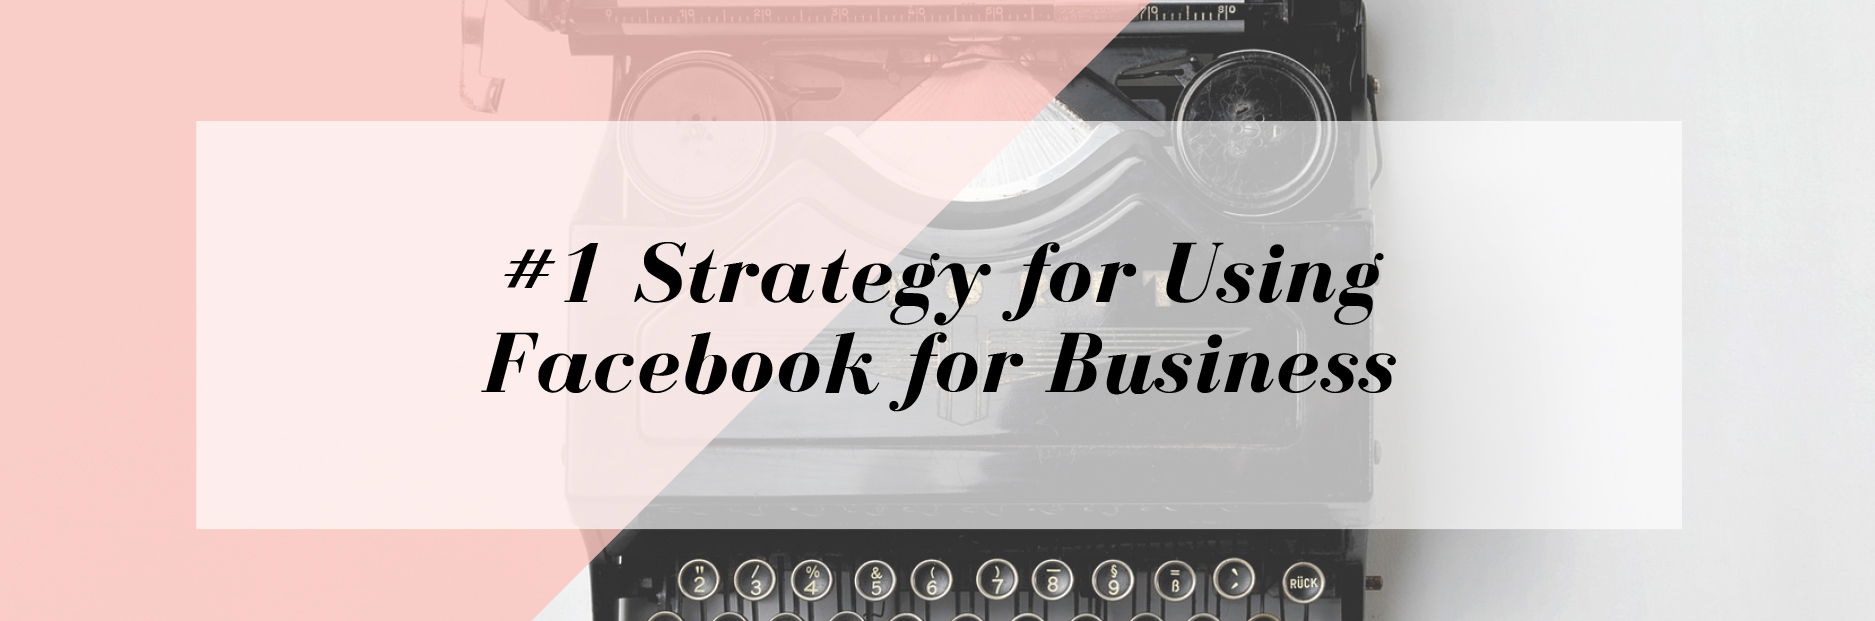 The #1 Strategy for Using Facebook for Business